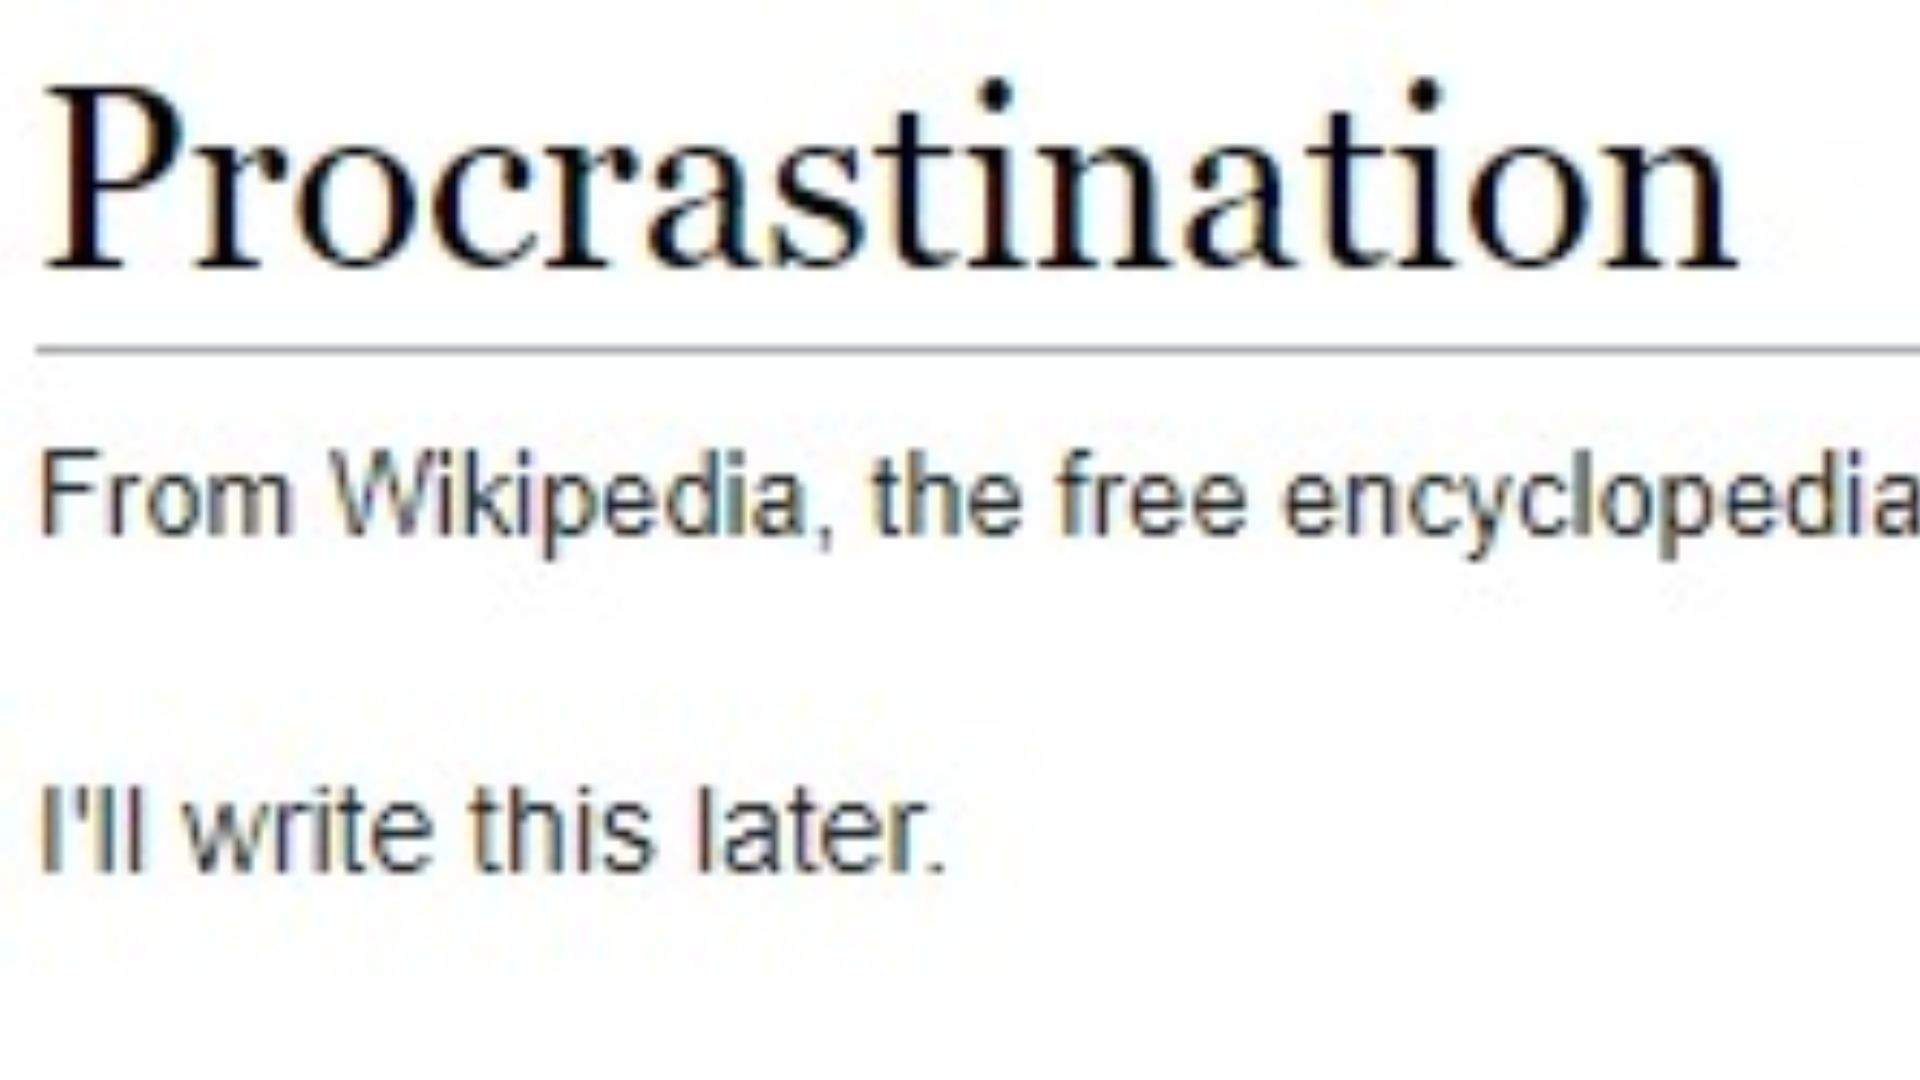 Best wikipedia page ever, so accurate